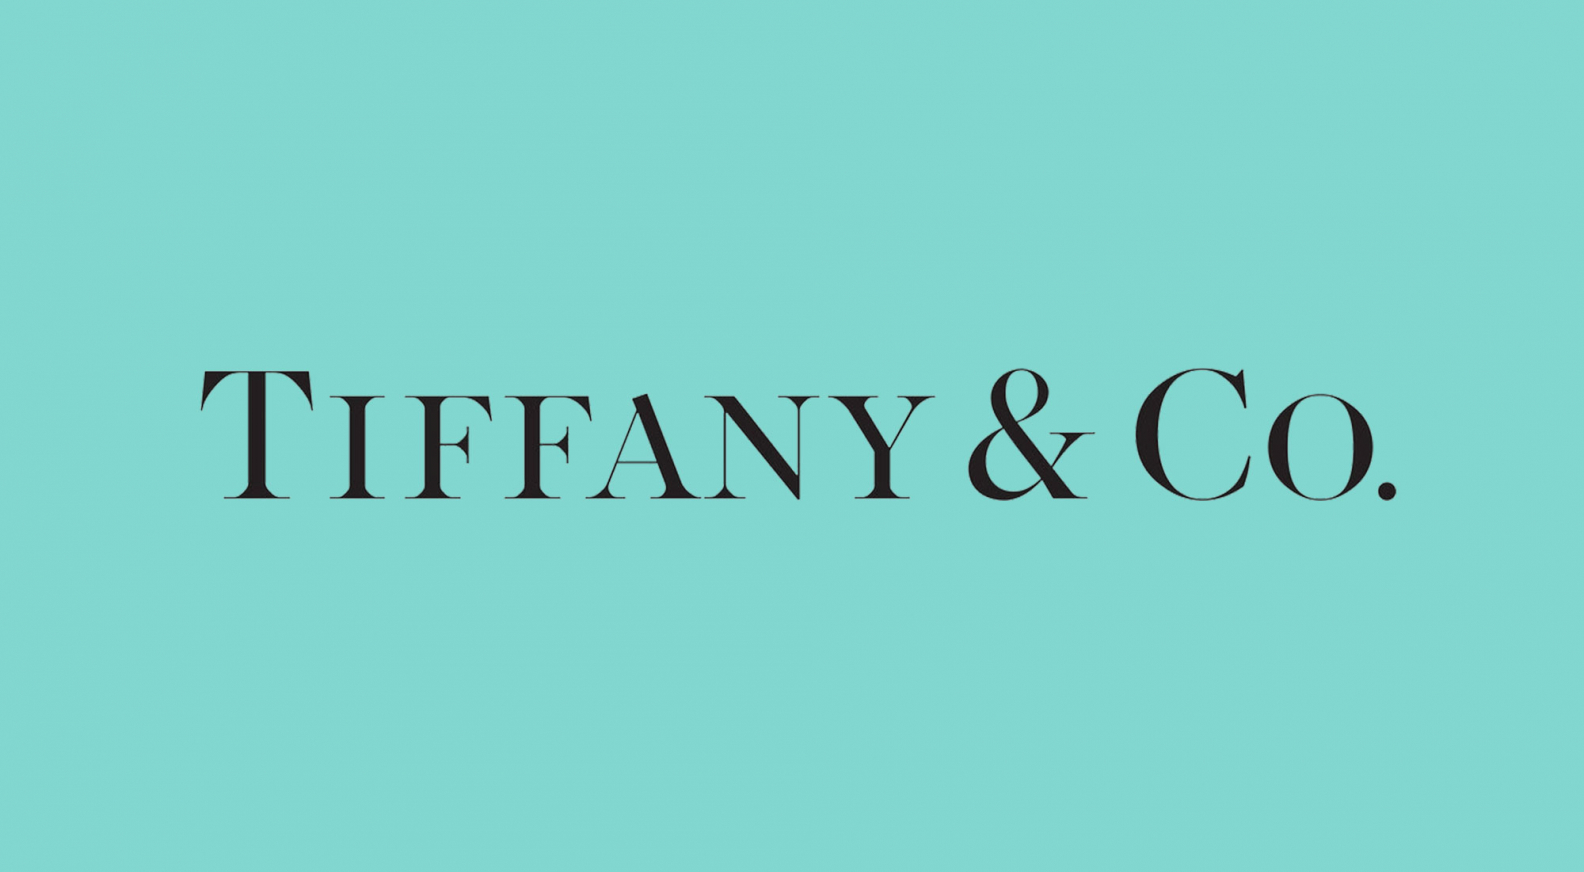 Tiffany & Co. Brand Logo